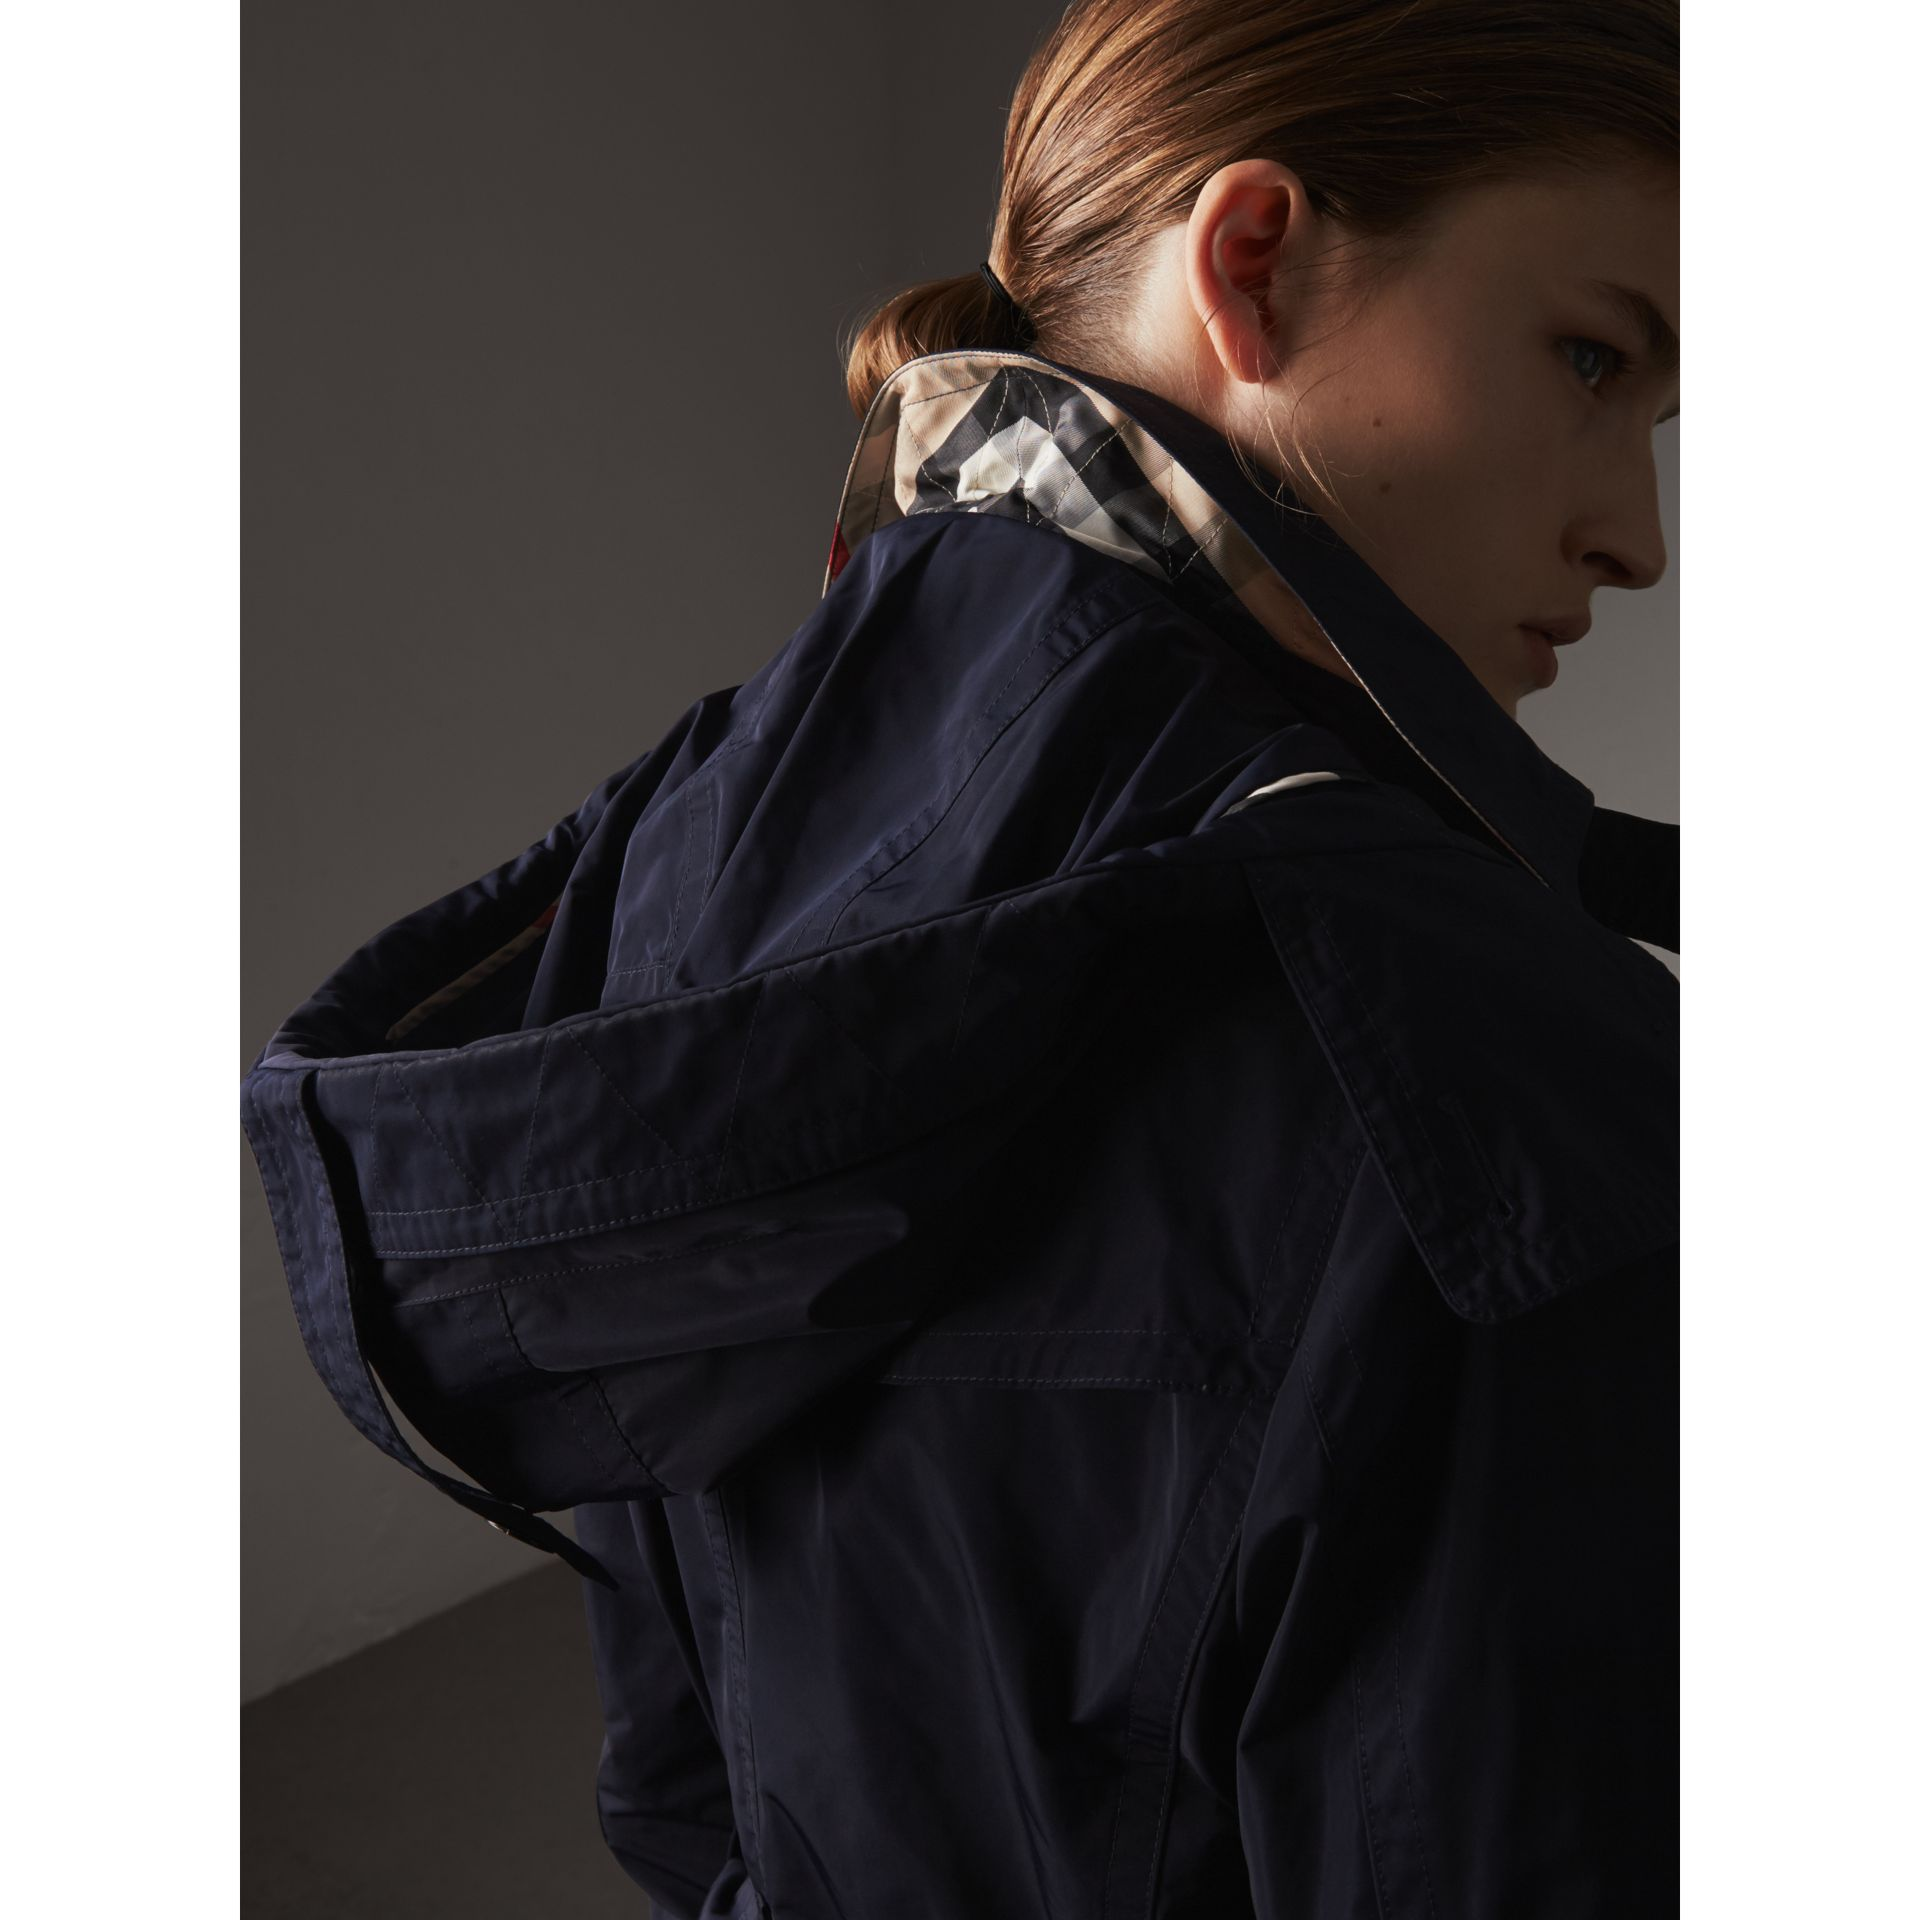 Taffeta Trench Coat with Detachable Hood in Navy - Women | Burberry United Kingdom - gallery image 2